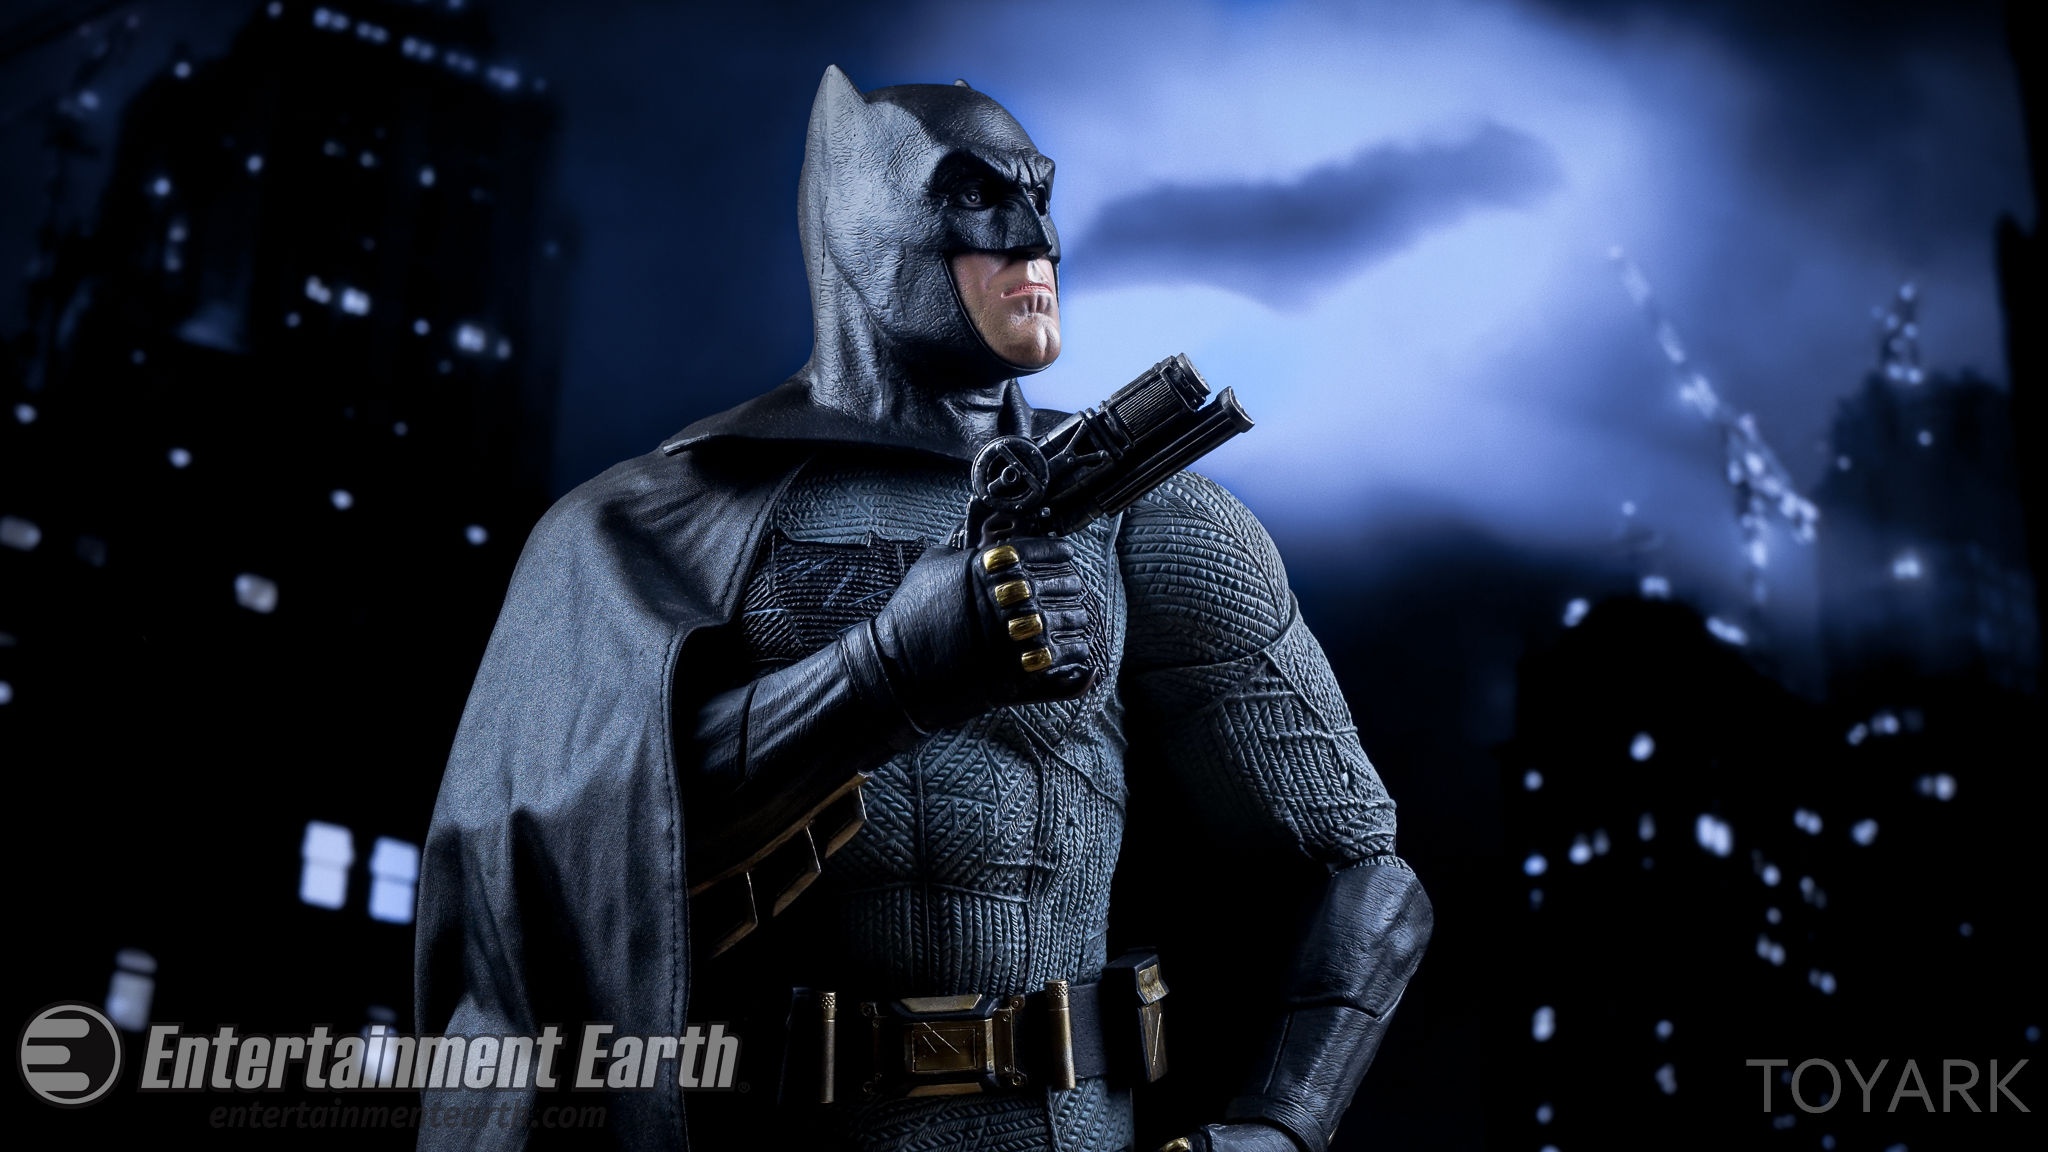 http://news.toyark.com/wp-content/uploads/sites/4/2016/06/NECA-BvS-Quarter-Scale-Batman-053.jpg